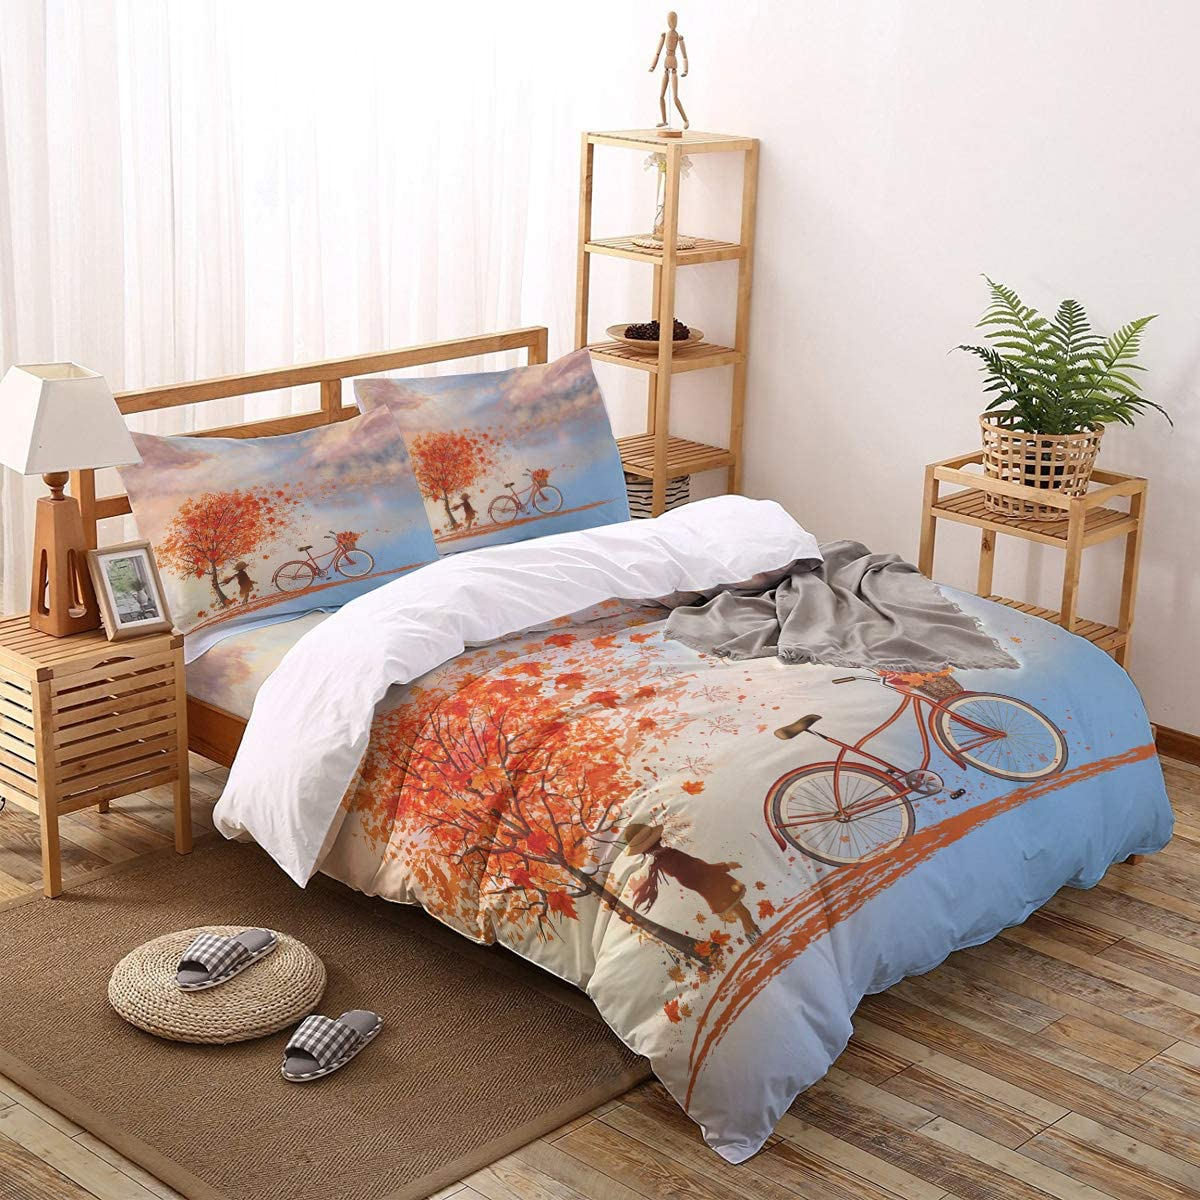 Greeeen 4 Pieces Duvet Cover + Flat Bedding Set- 1 Popular overseas Recommended